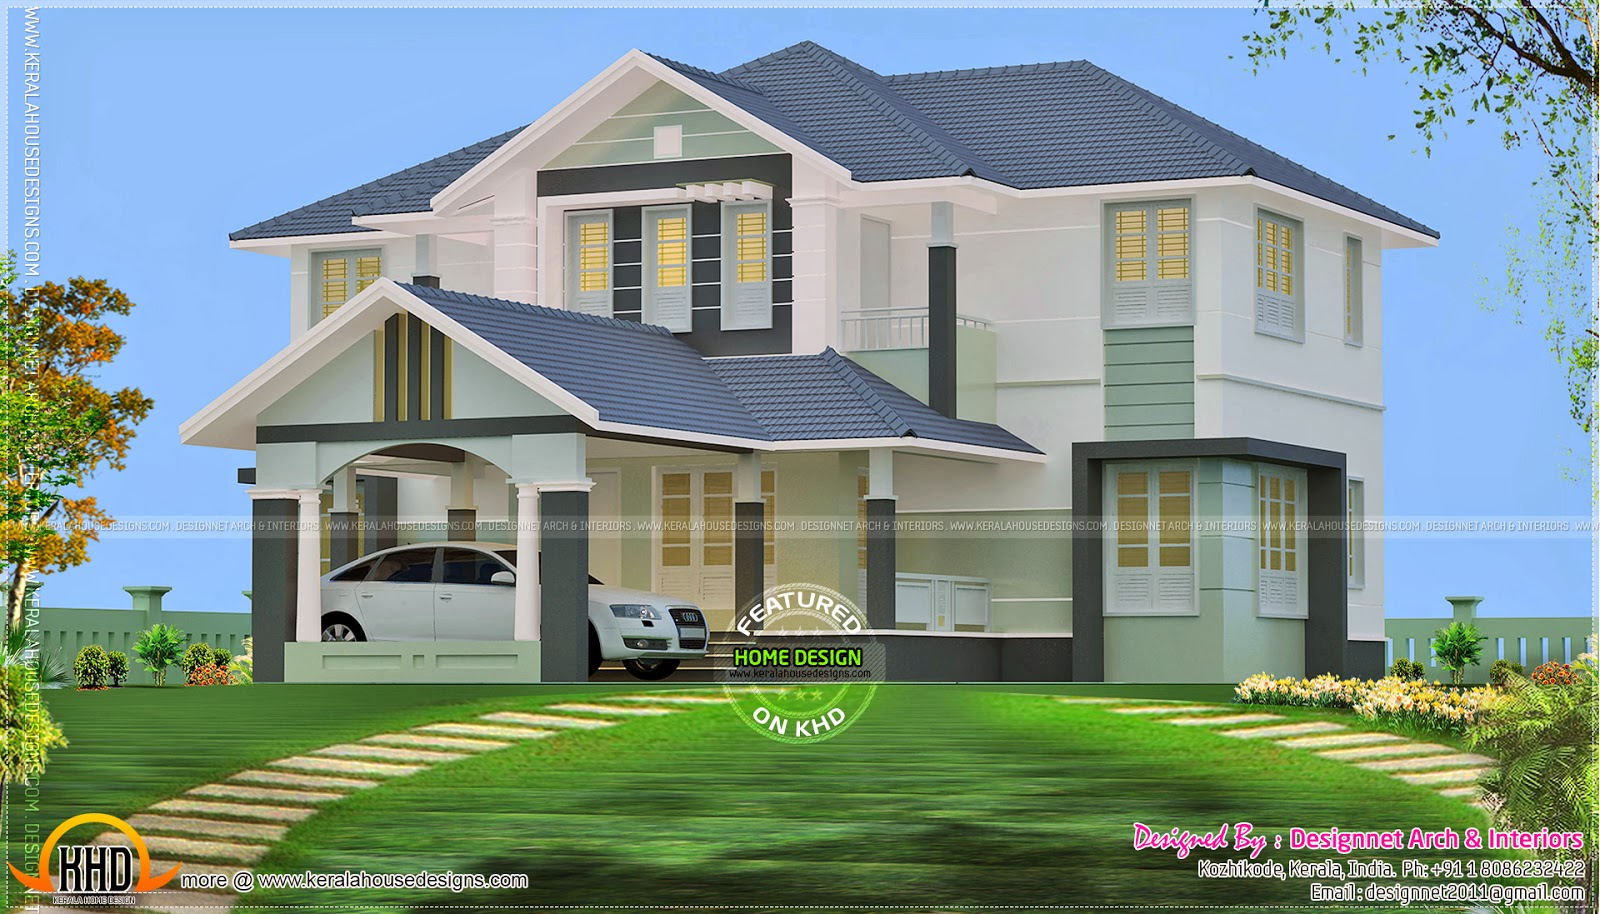 nice-looking-villa Ghanaian House With Plans on belgian house plans, welsh house plans, peruvian house plans, icelandic house plans, south african house plans, german house plans, honduran house plans, american house plans, polish house plans, new ghana house plans, 4 bedroom house plans, indian house plans, nigerian house plans, japanese house plans, panamanian house plans, simple affordable house plans, english house plans, maltese house plans, hungarian house plans,